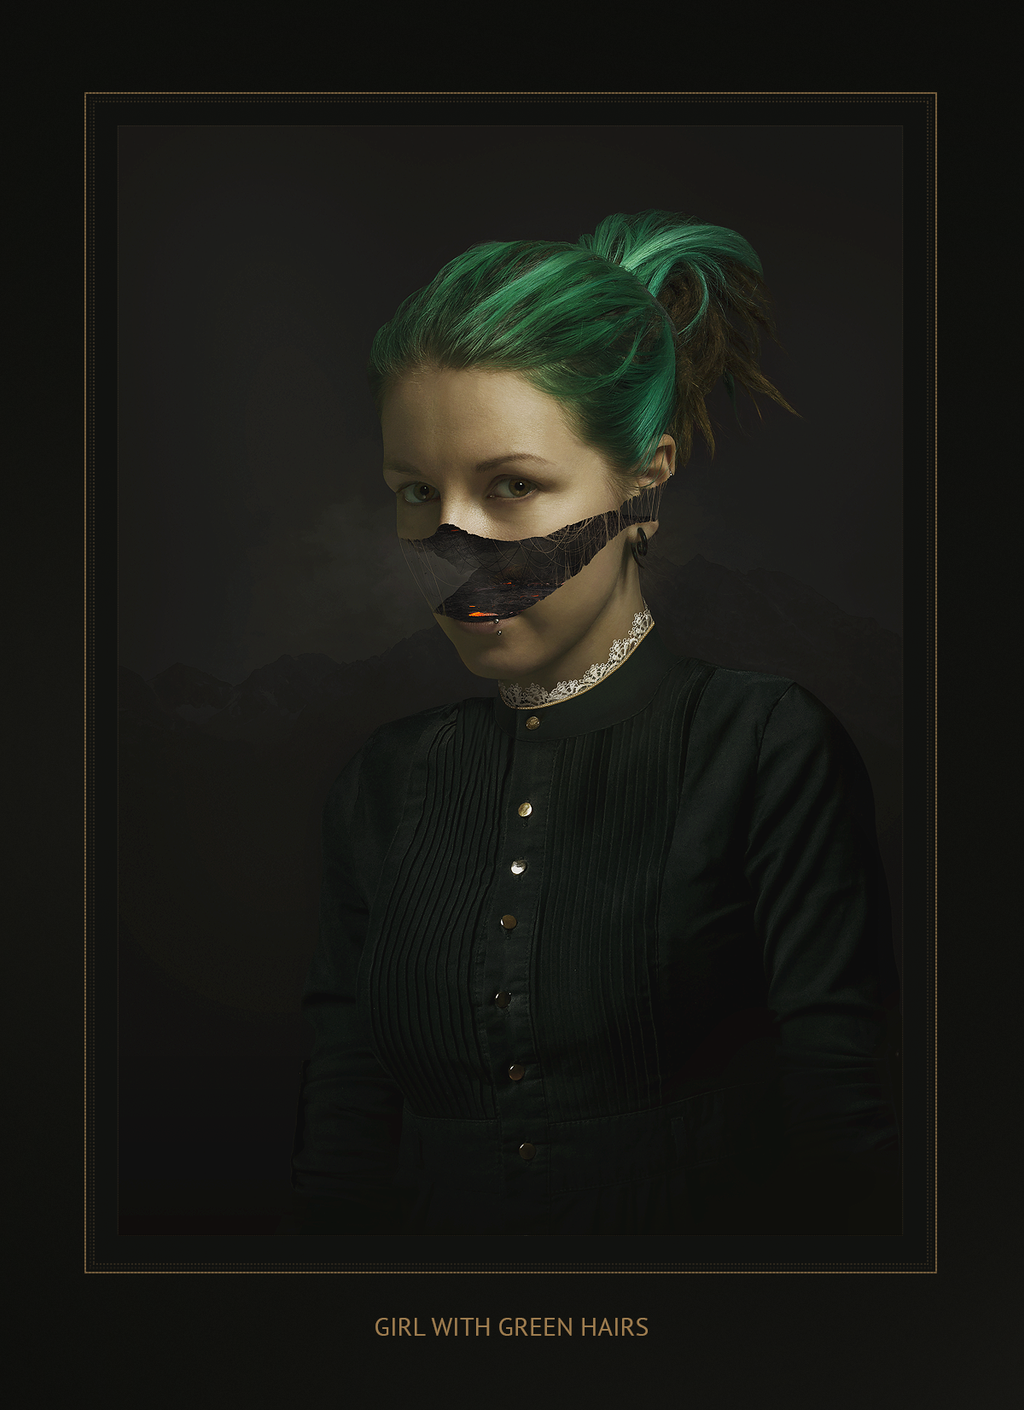 Girl with green hairs by Norg88